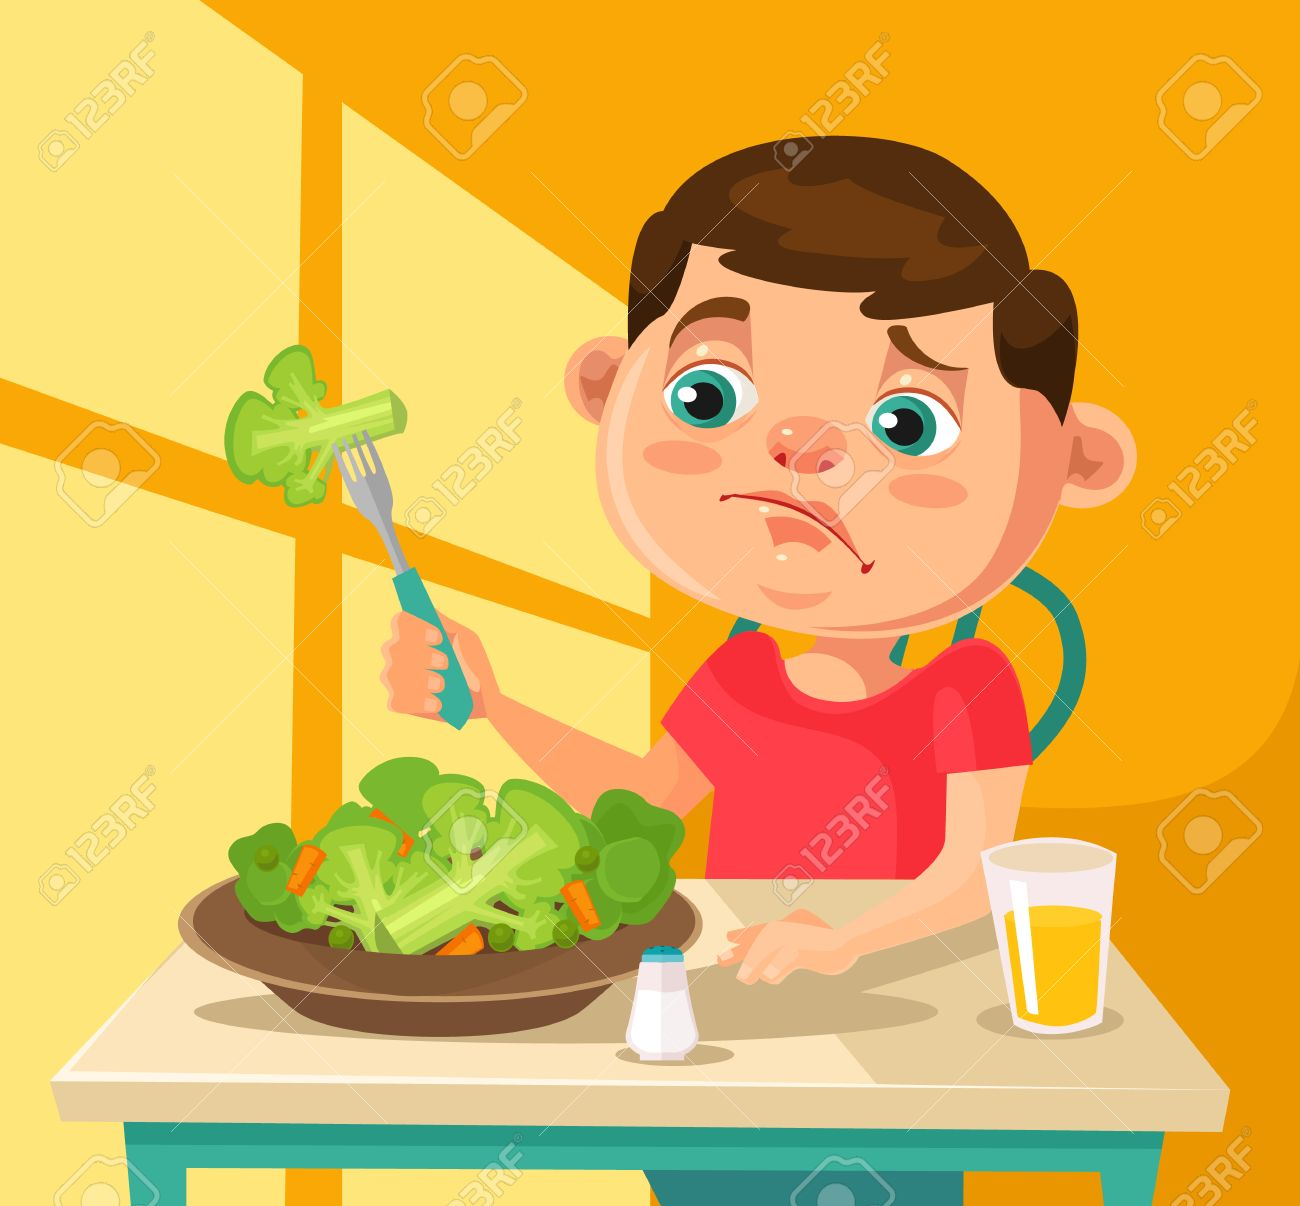 Child Character Does Not Want To Eat Broccoli Flat Cartoon